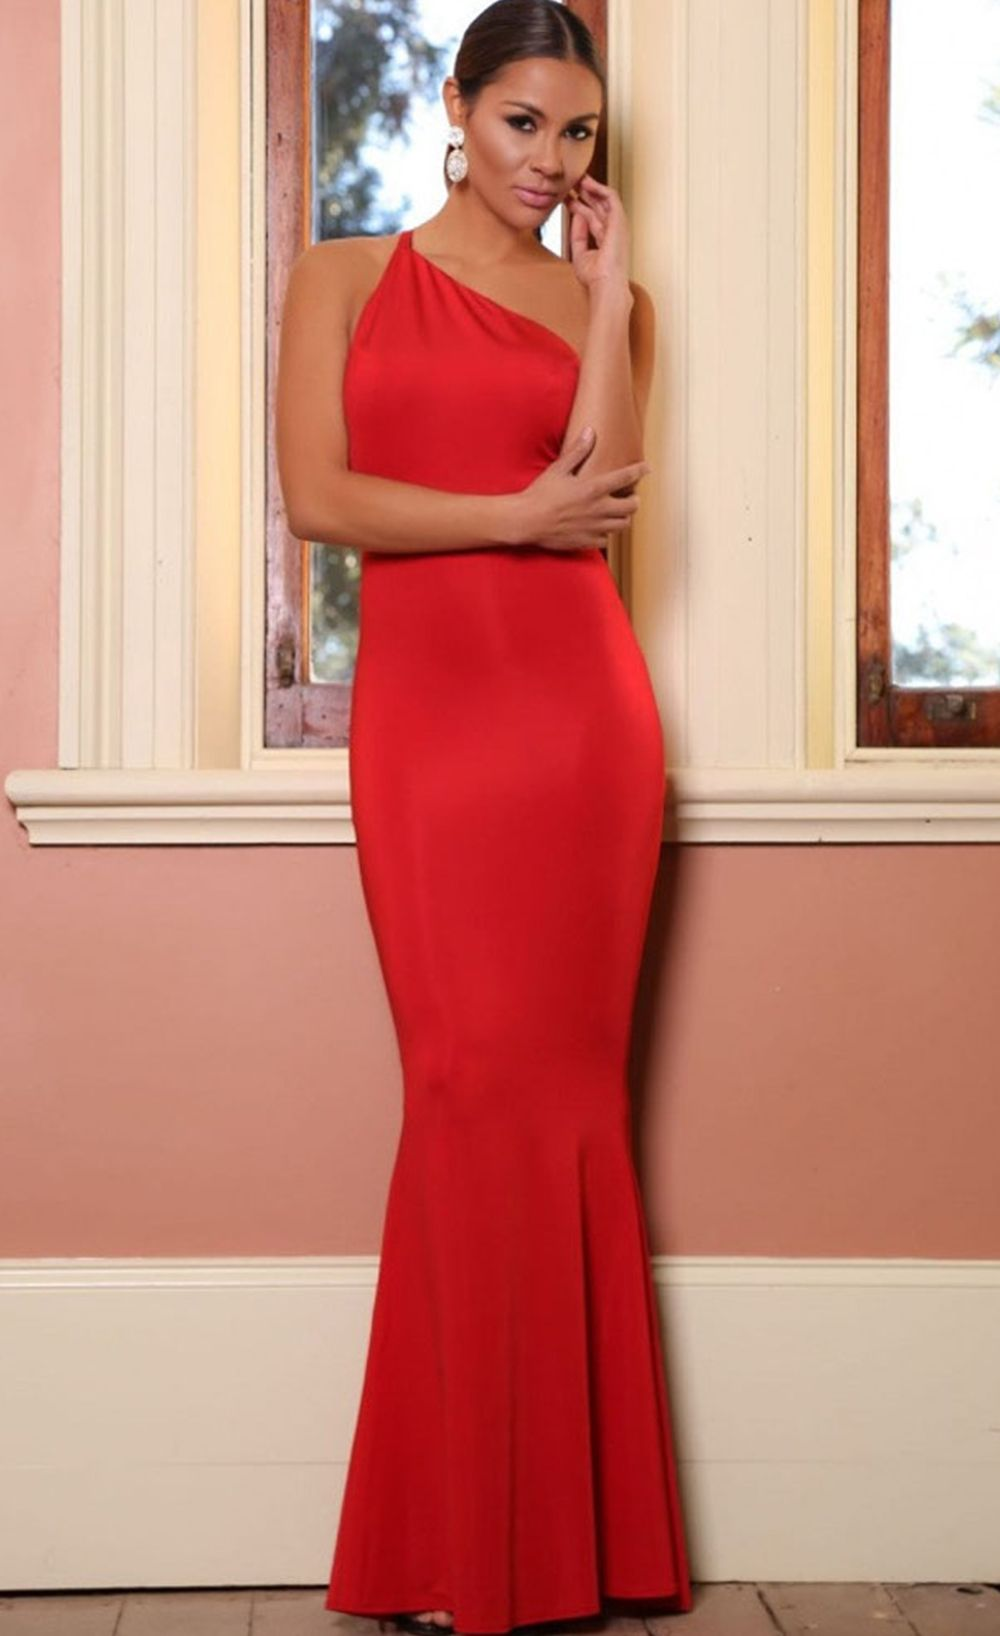 Prom party long dress with low cutout back all wedding ideas